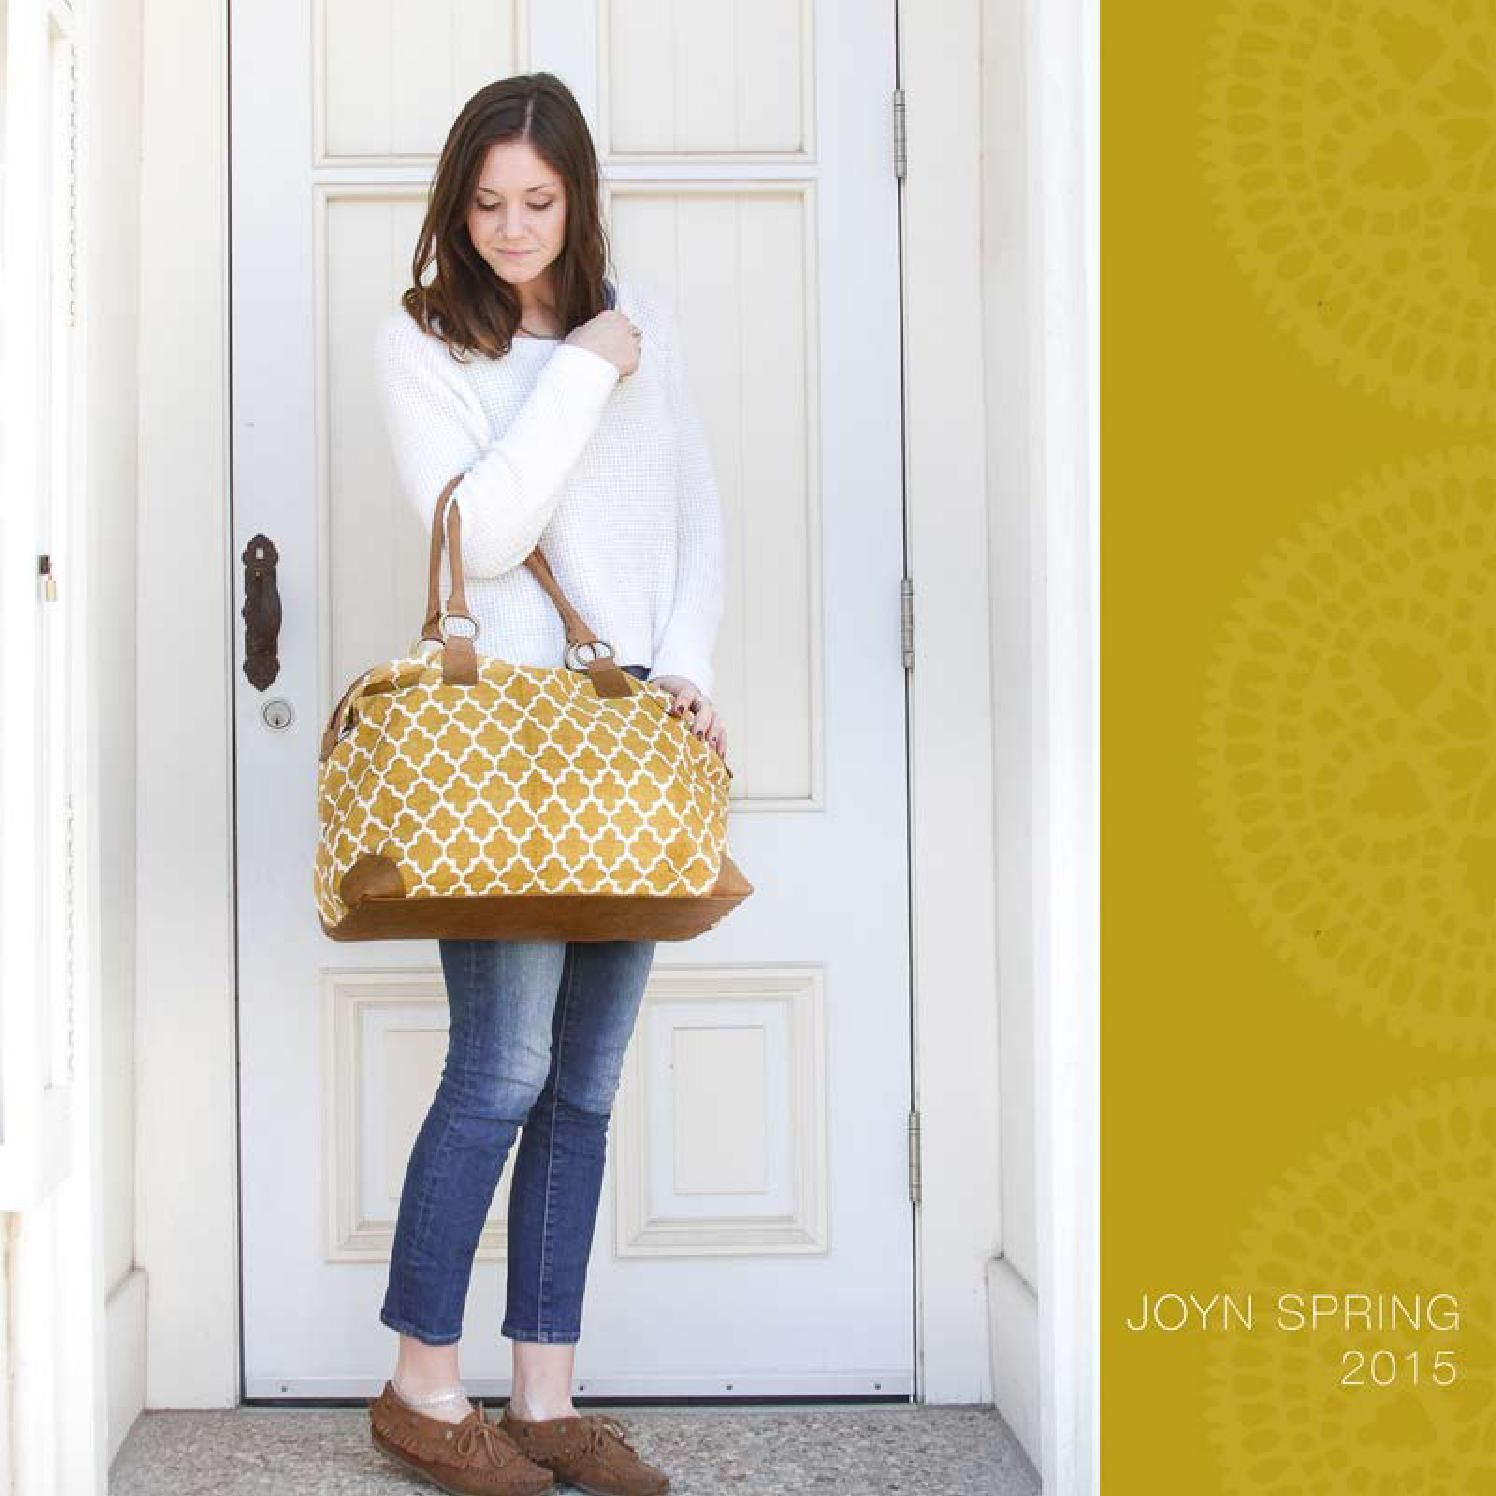 The JOYN Spring 2015 Look Book is now available!